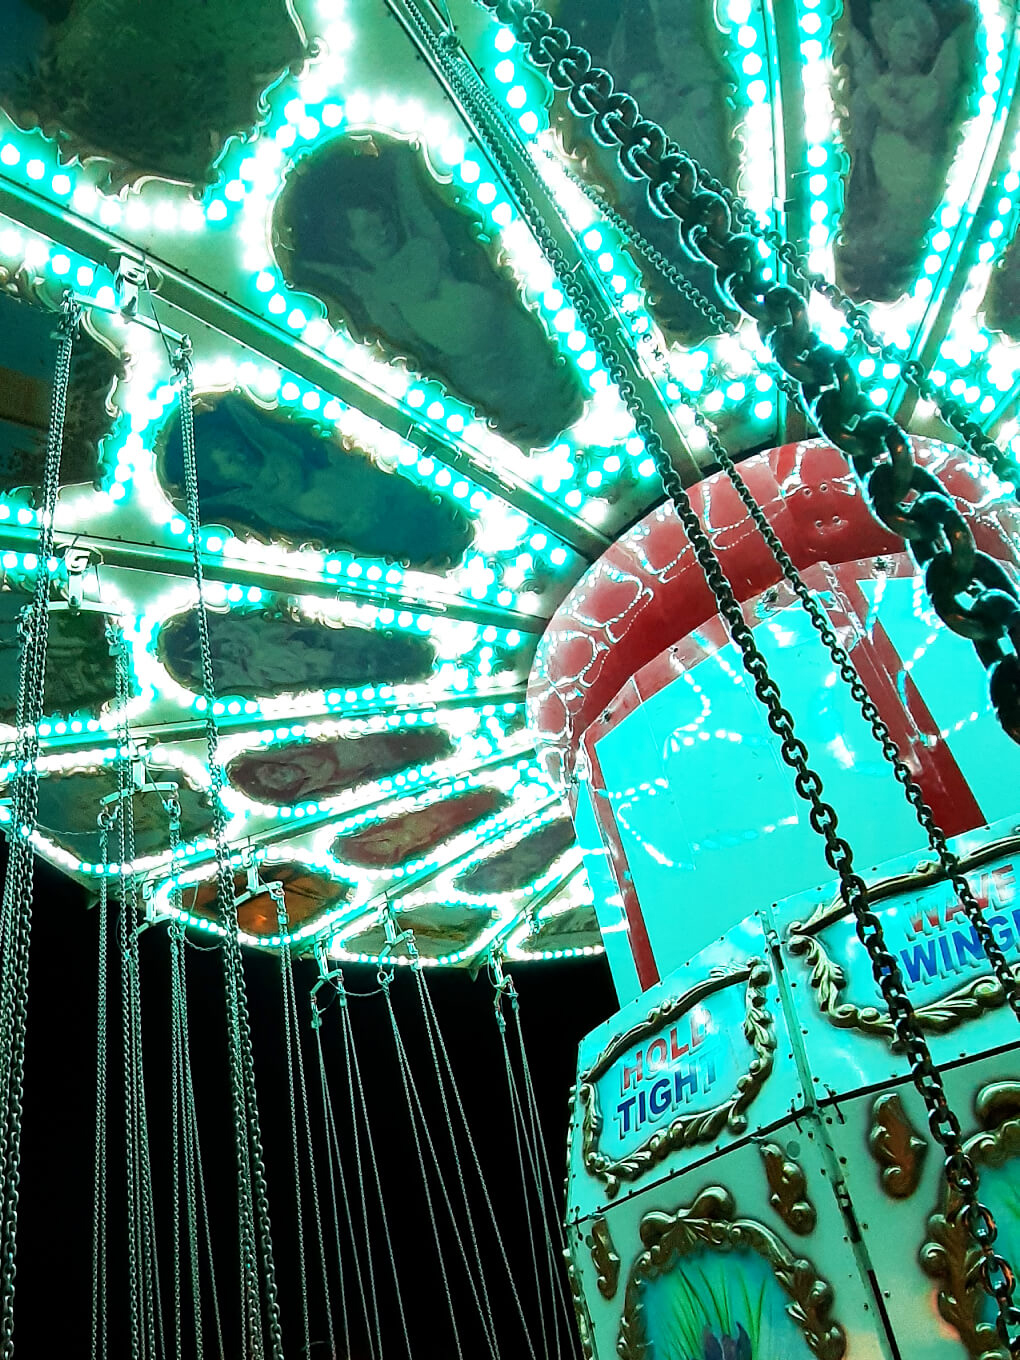 Bright lights in the canopy over a rotating swing ride, with chains to each seat hanging down into the picture